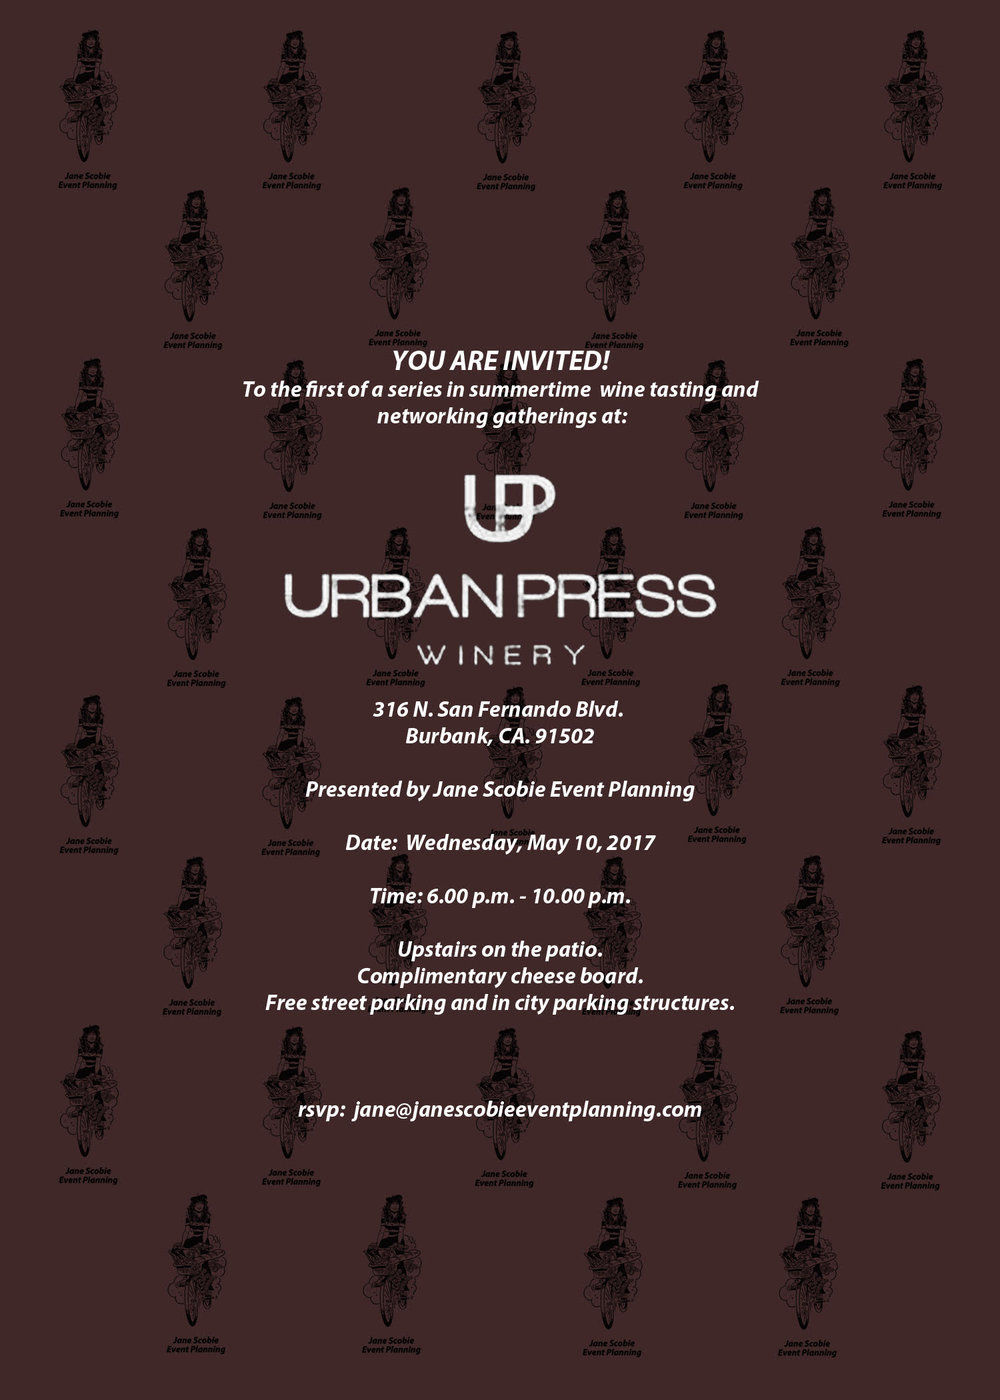 Urban Press Invite.jpg